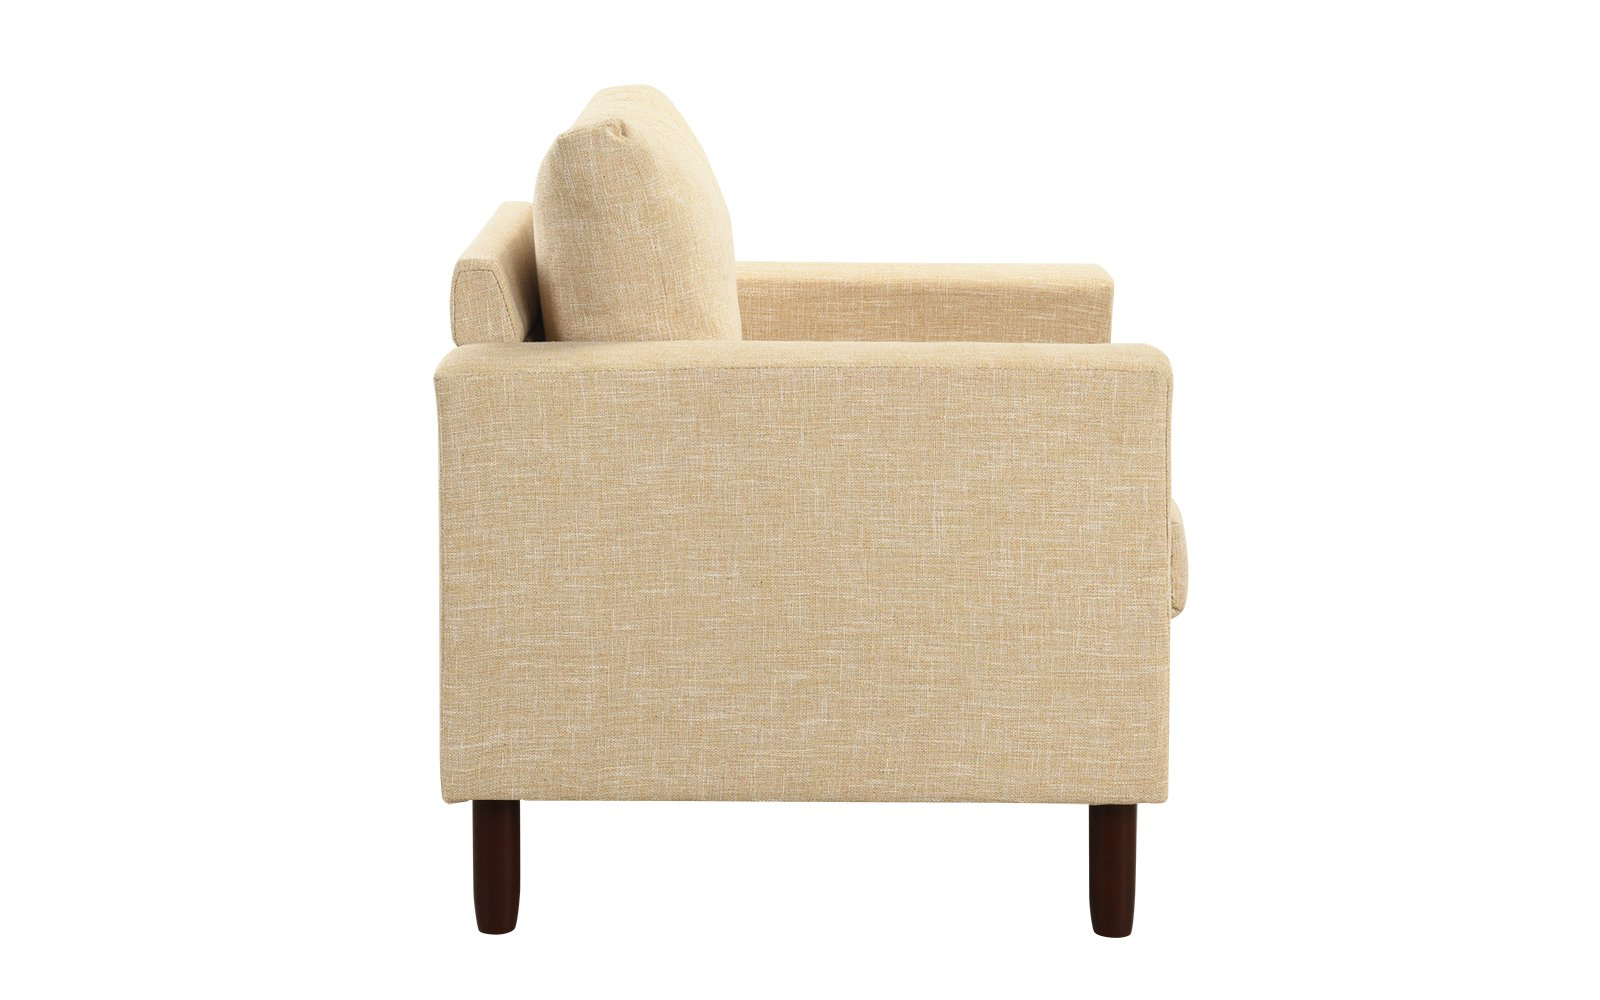 Details About Modern Tufted Linen Fabric Arm Chair Classic Living Room Accent Chair Dark Grey